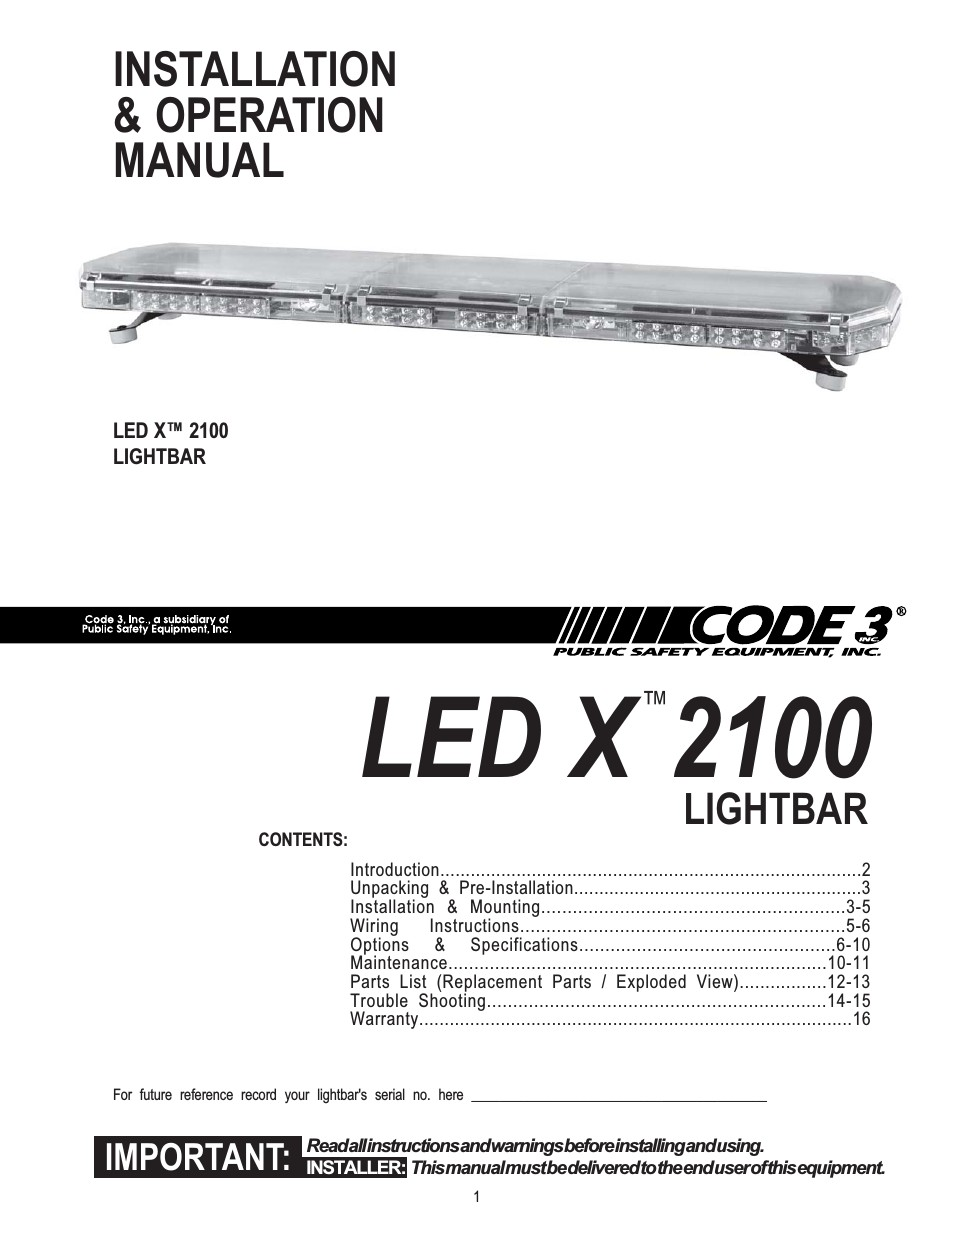 2100 Series Light Bar Furthermore Code 3 2100 Light Bar Wiring Code 3  RX2700 Parts Code 3 Rx2700 Wiring Diagram